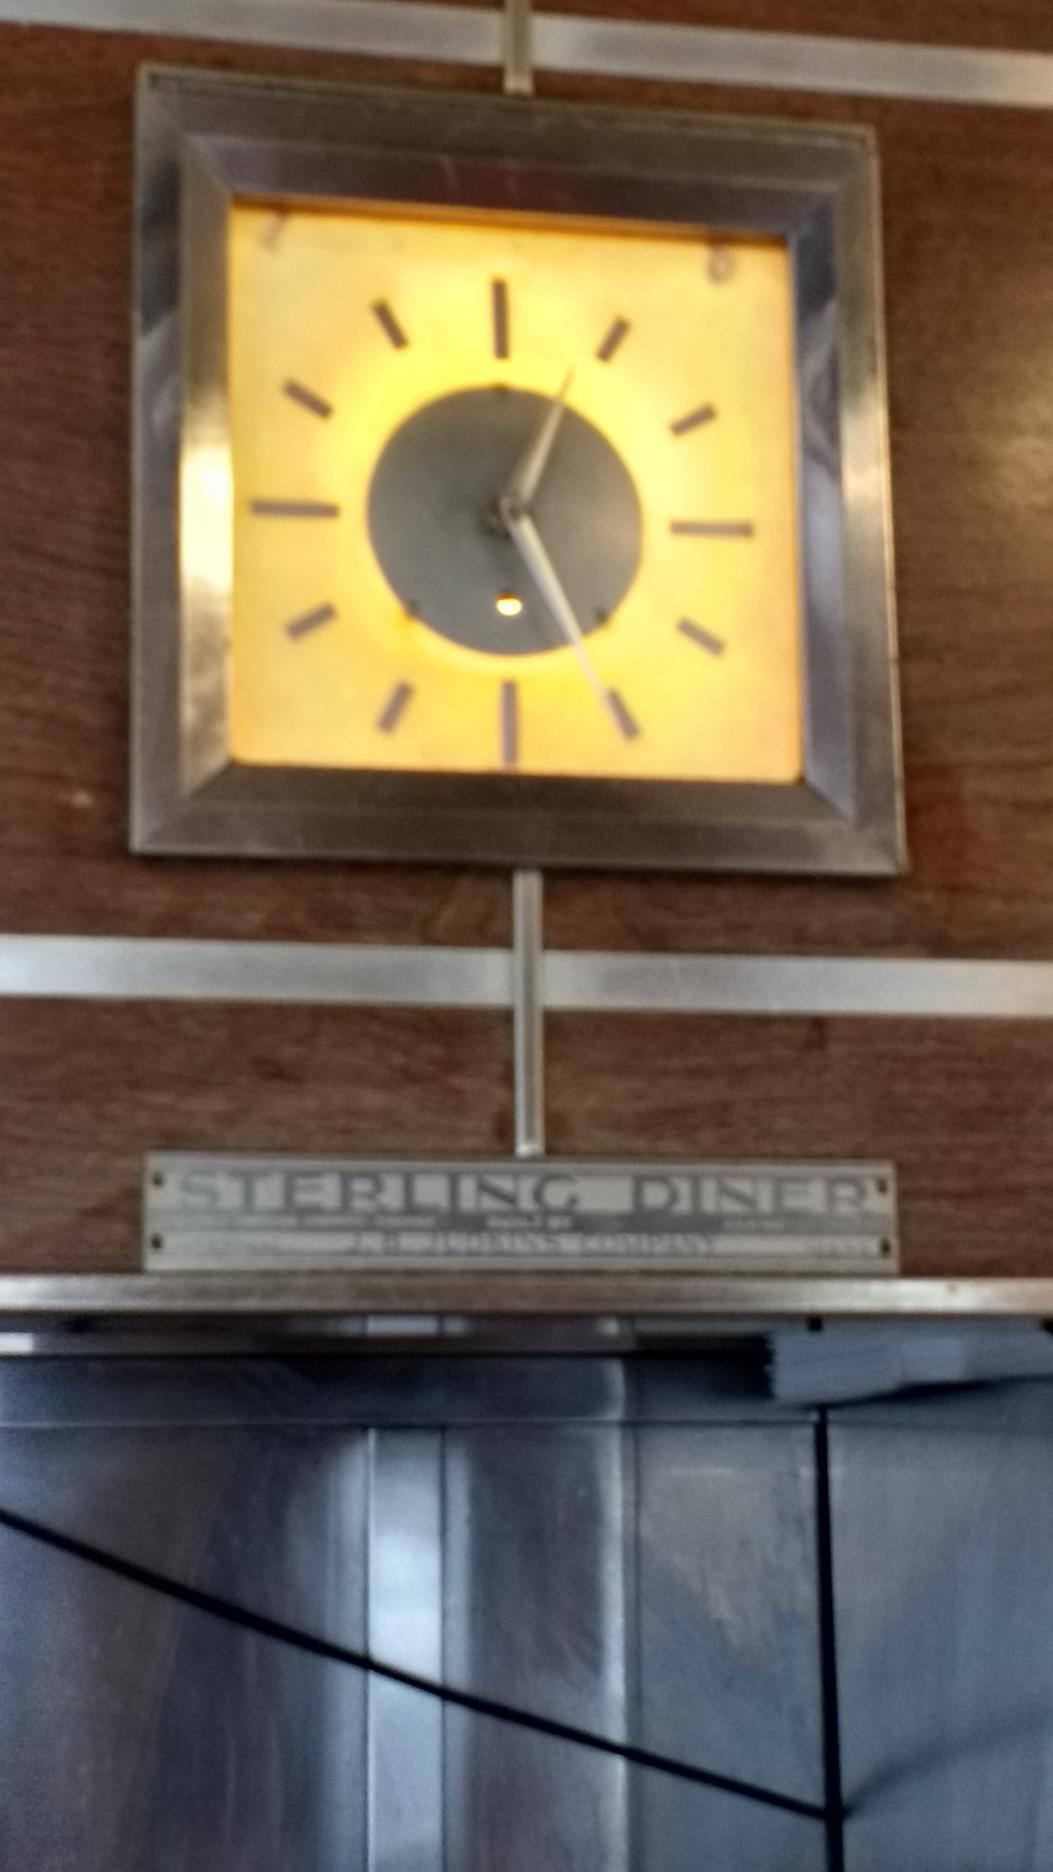 Original clock and diner tag.